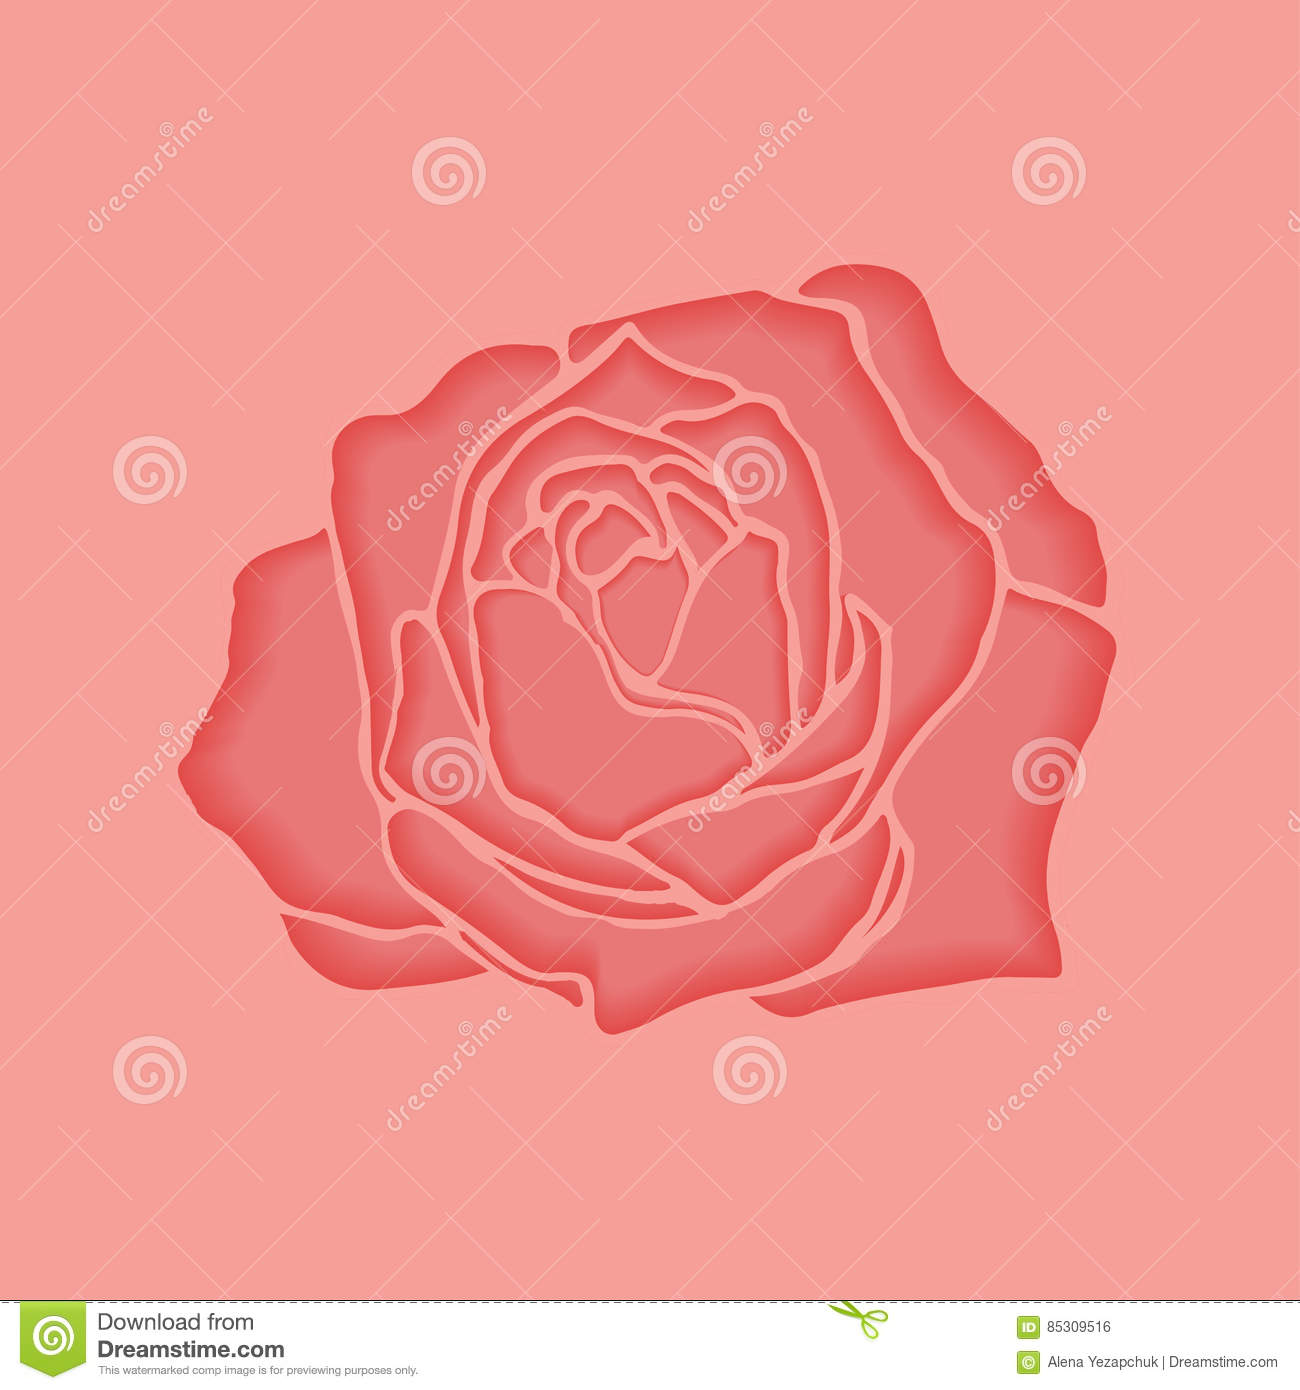 Vector pink rose stock vector. Illustration of background - 85309516